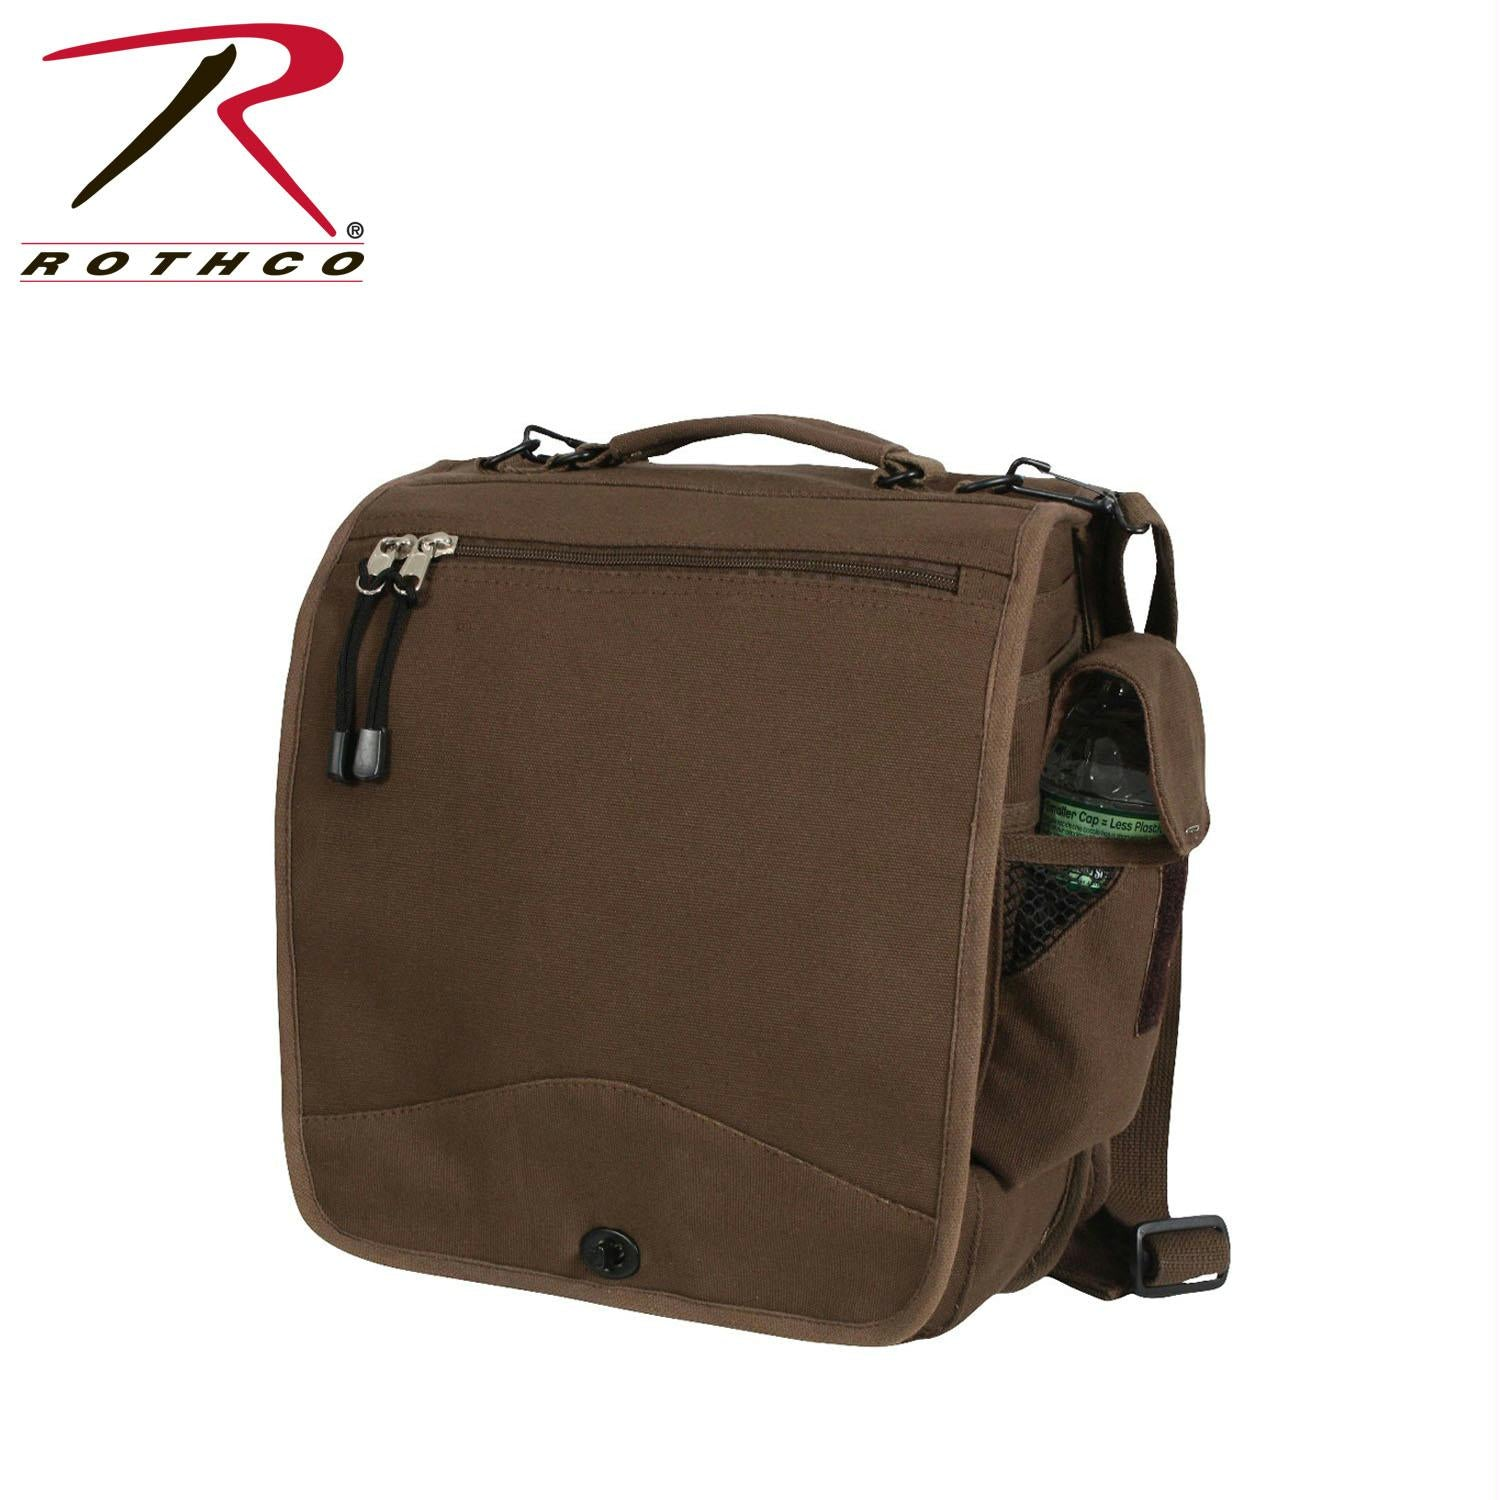 Rothco Canvas M-51 Engineers Field Bag - Earth Brown